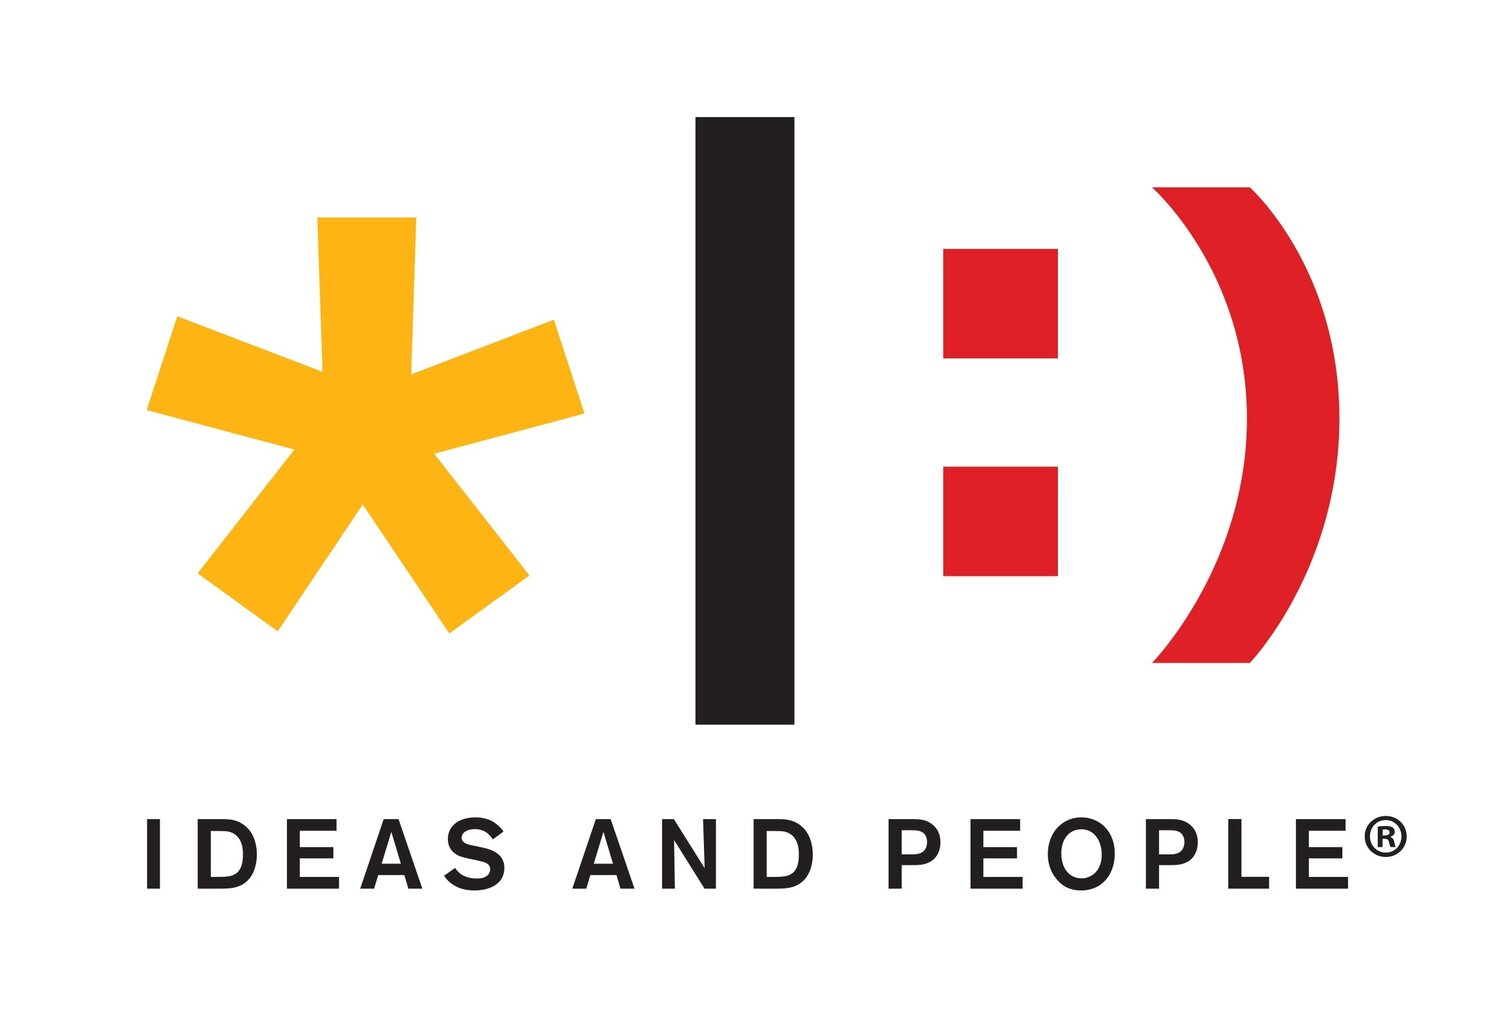 IDEAS AND PEOPLE ®